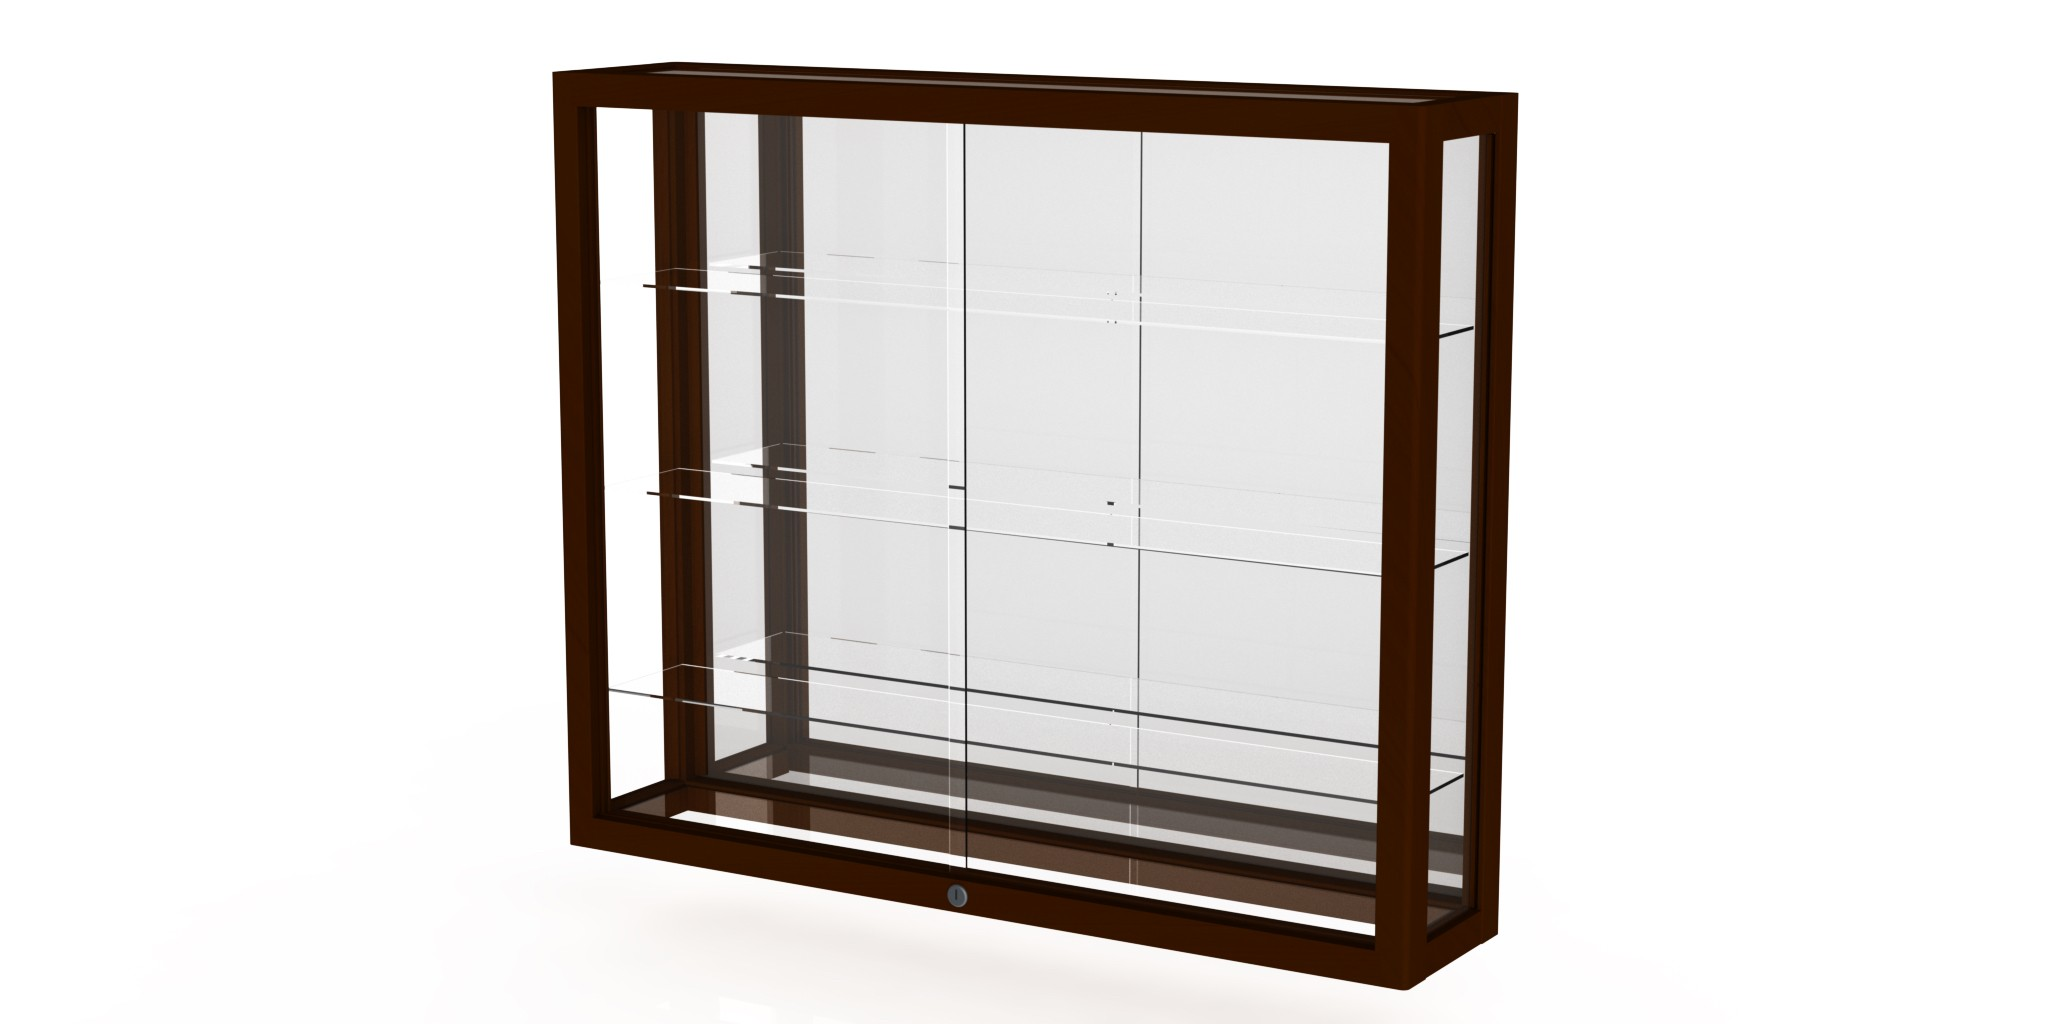 Waddell Heirloom Series 8903m 3'w Wall Case Hardwood Finish With Shelves -  Multiple Options